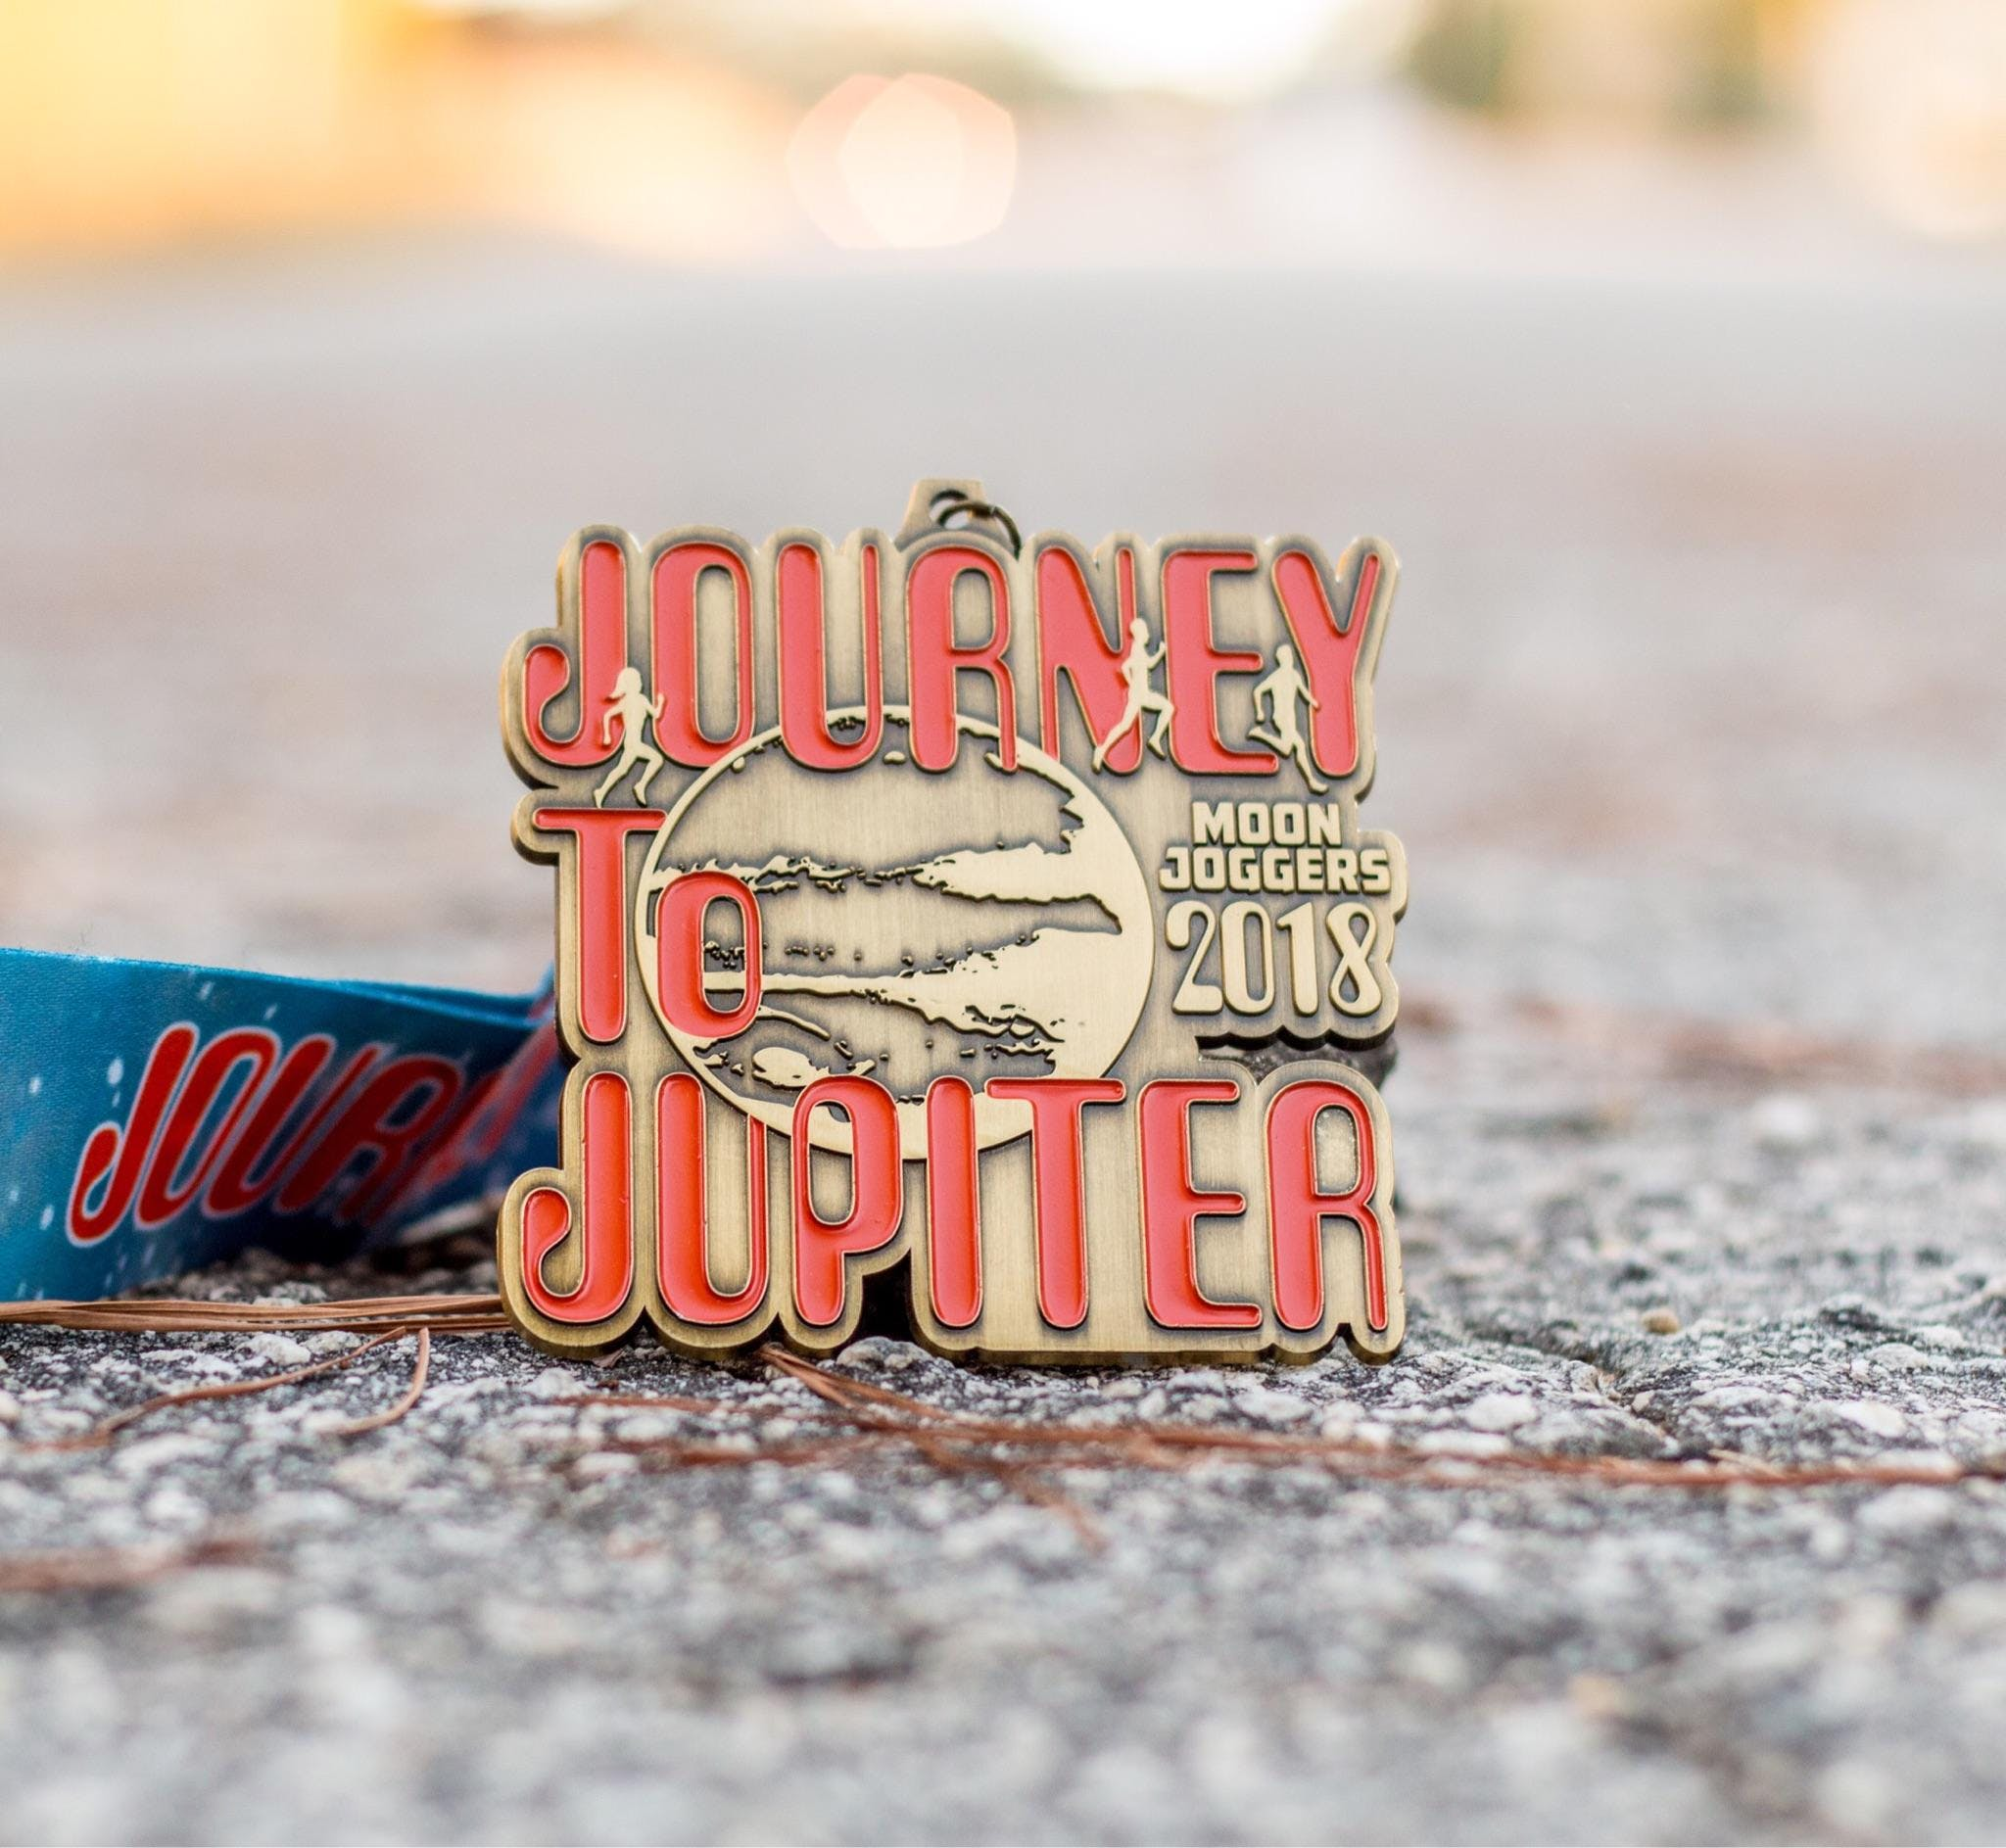 FREE SIGN UP: Journey to Jupiter Running & Walking Challenge 2018 -Scottsdale